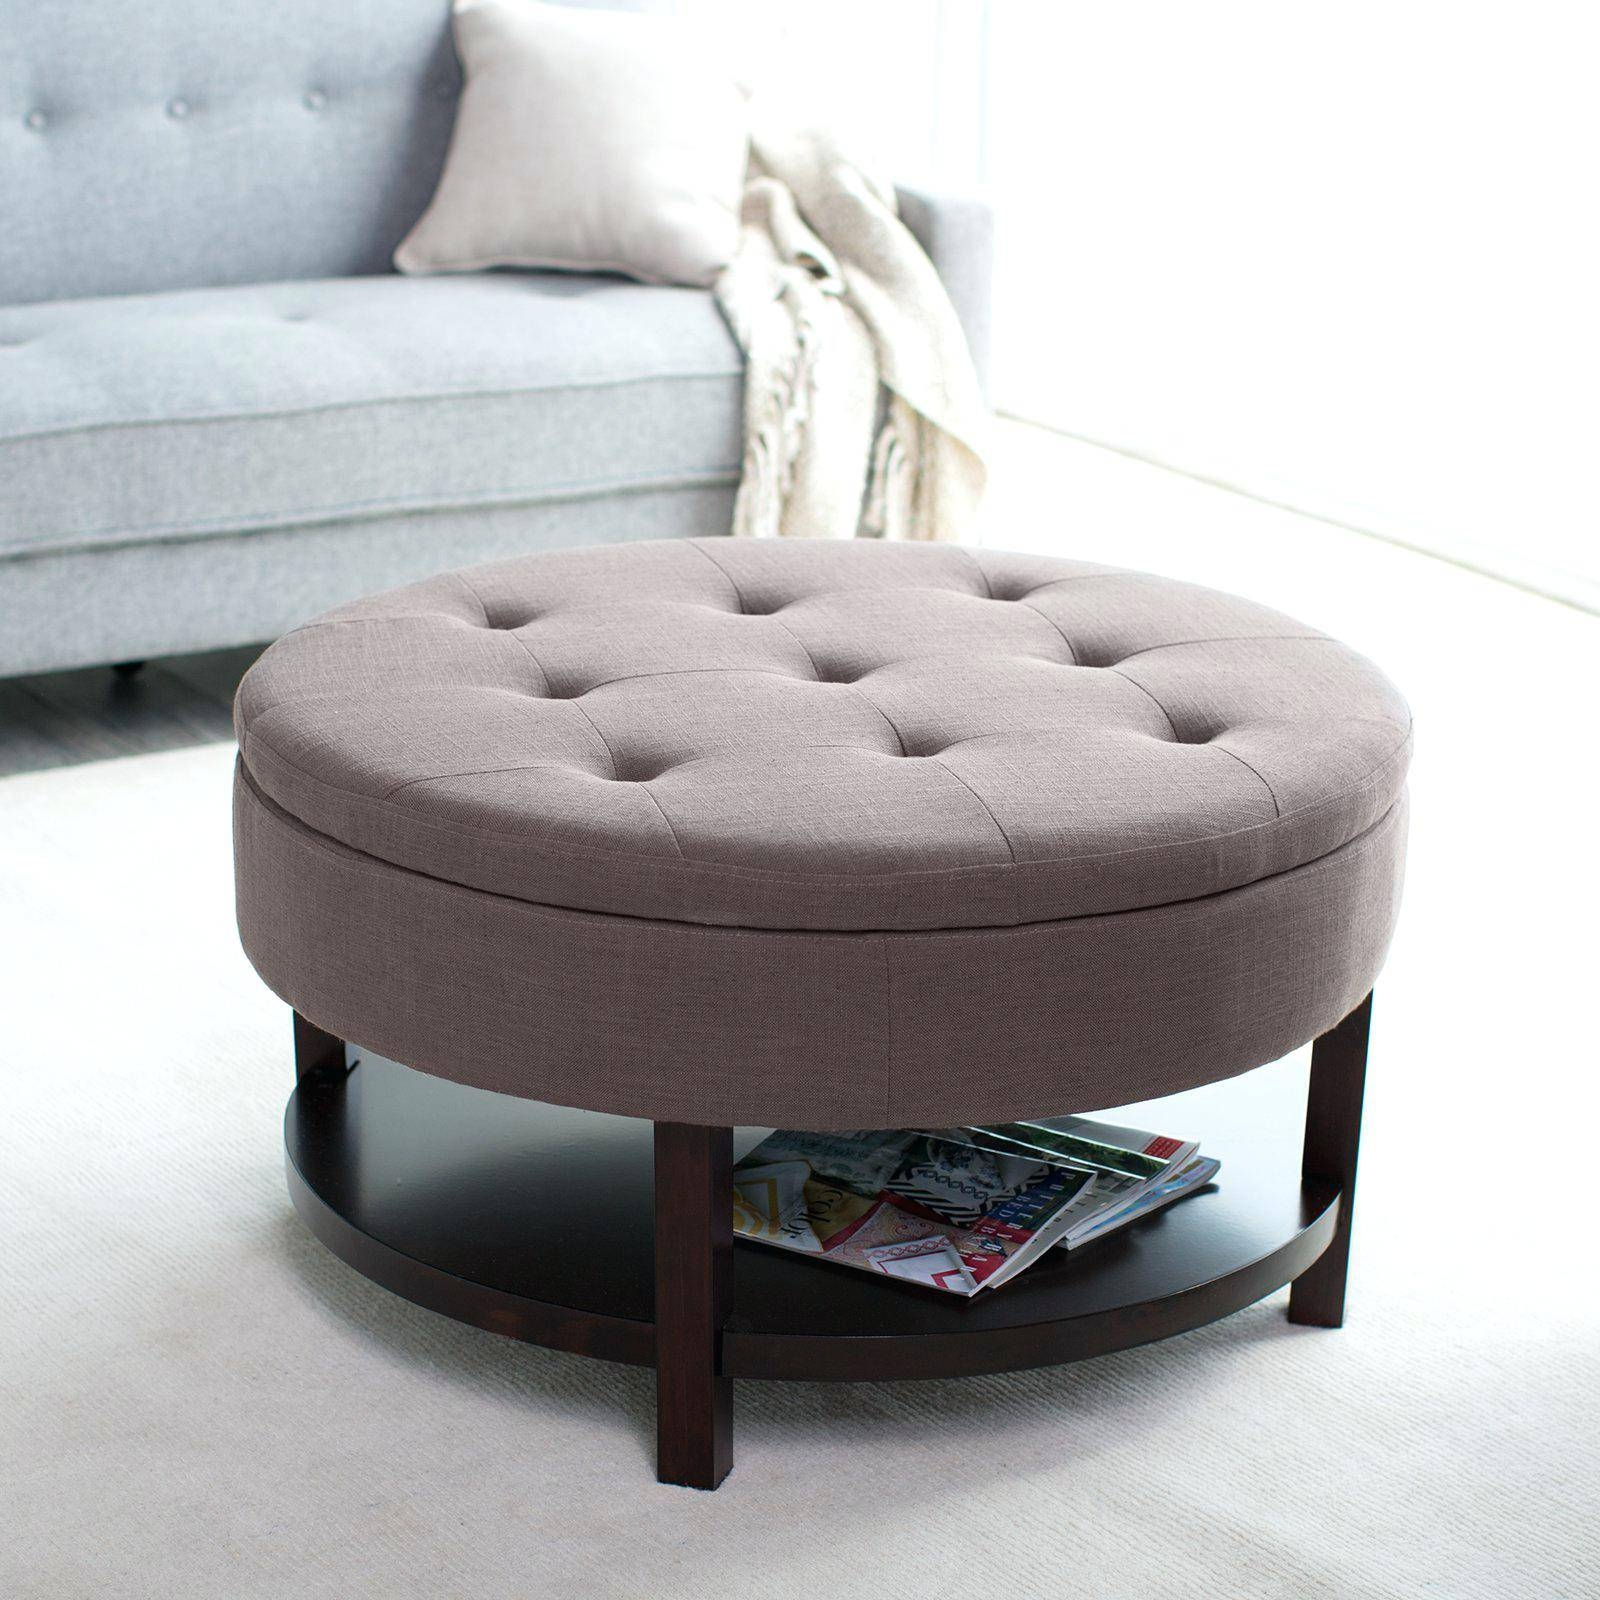 Coffee Tables Storage Circular Table With A Wire Box - Jericho inside Round Coffee Table Storages (Image 11 of 30)